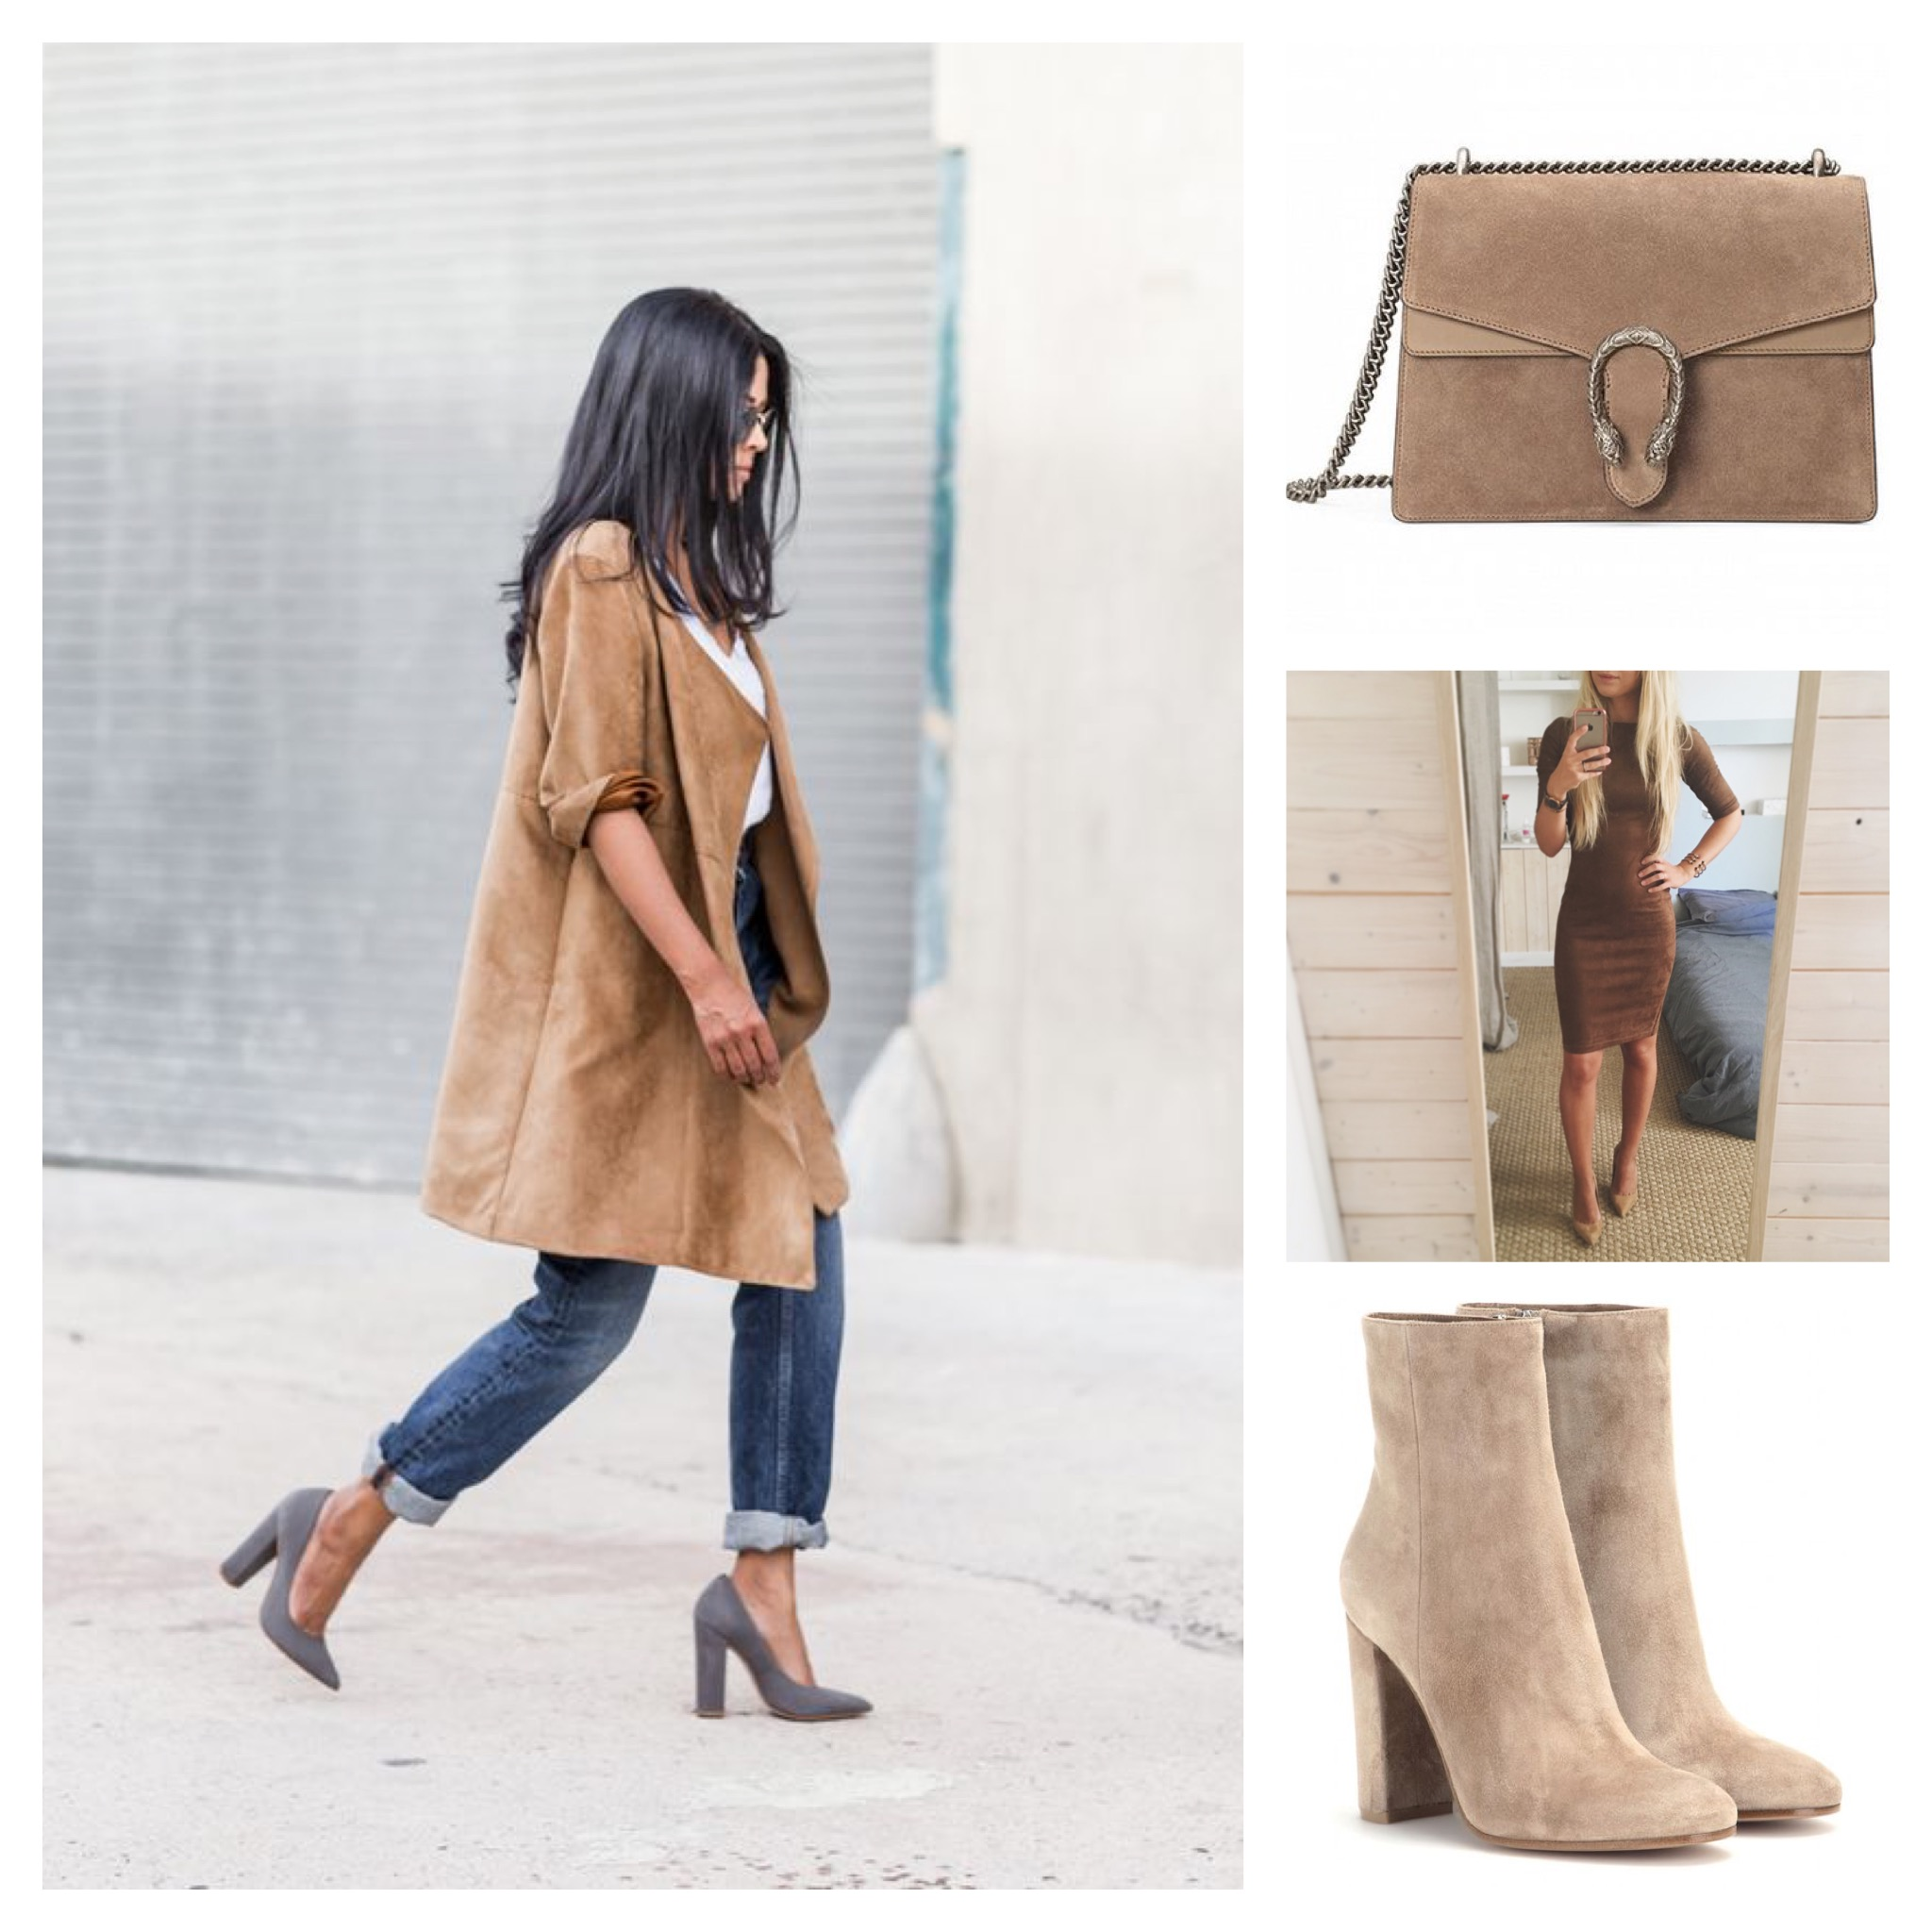 Suede Dress, Shoes and Bag